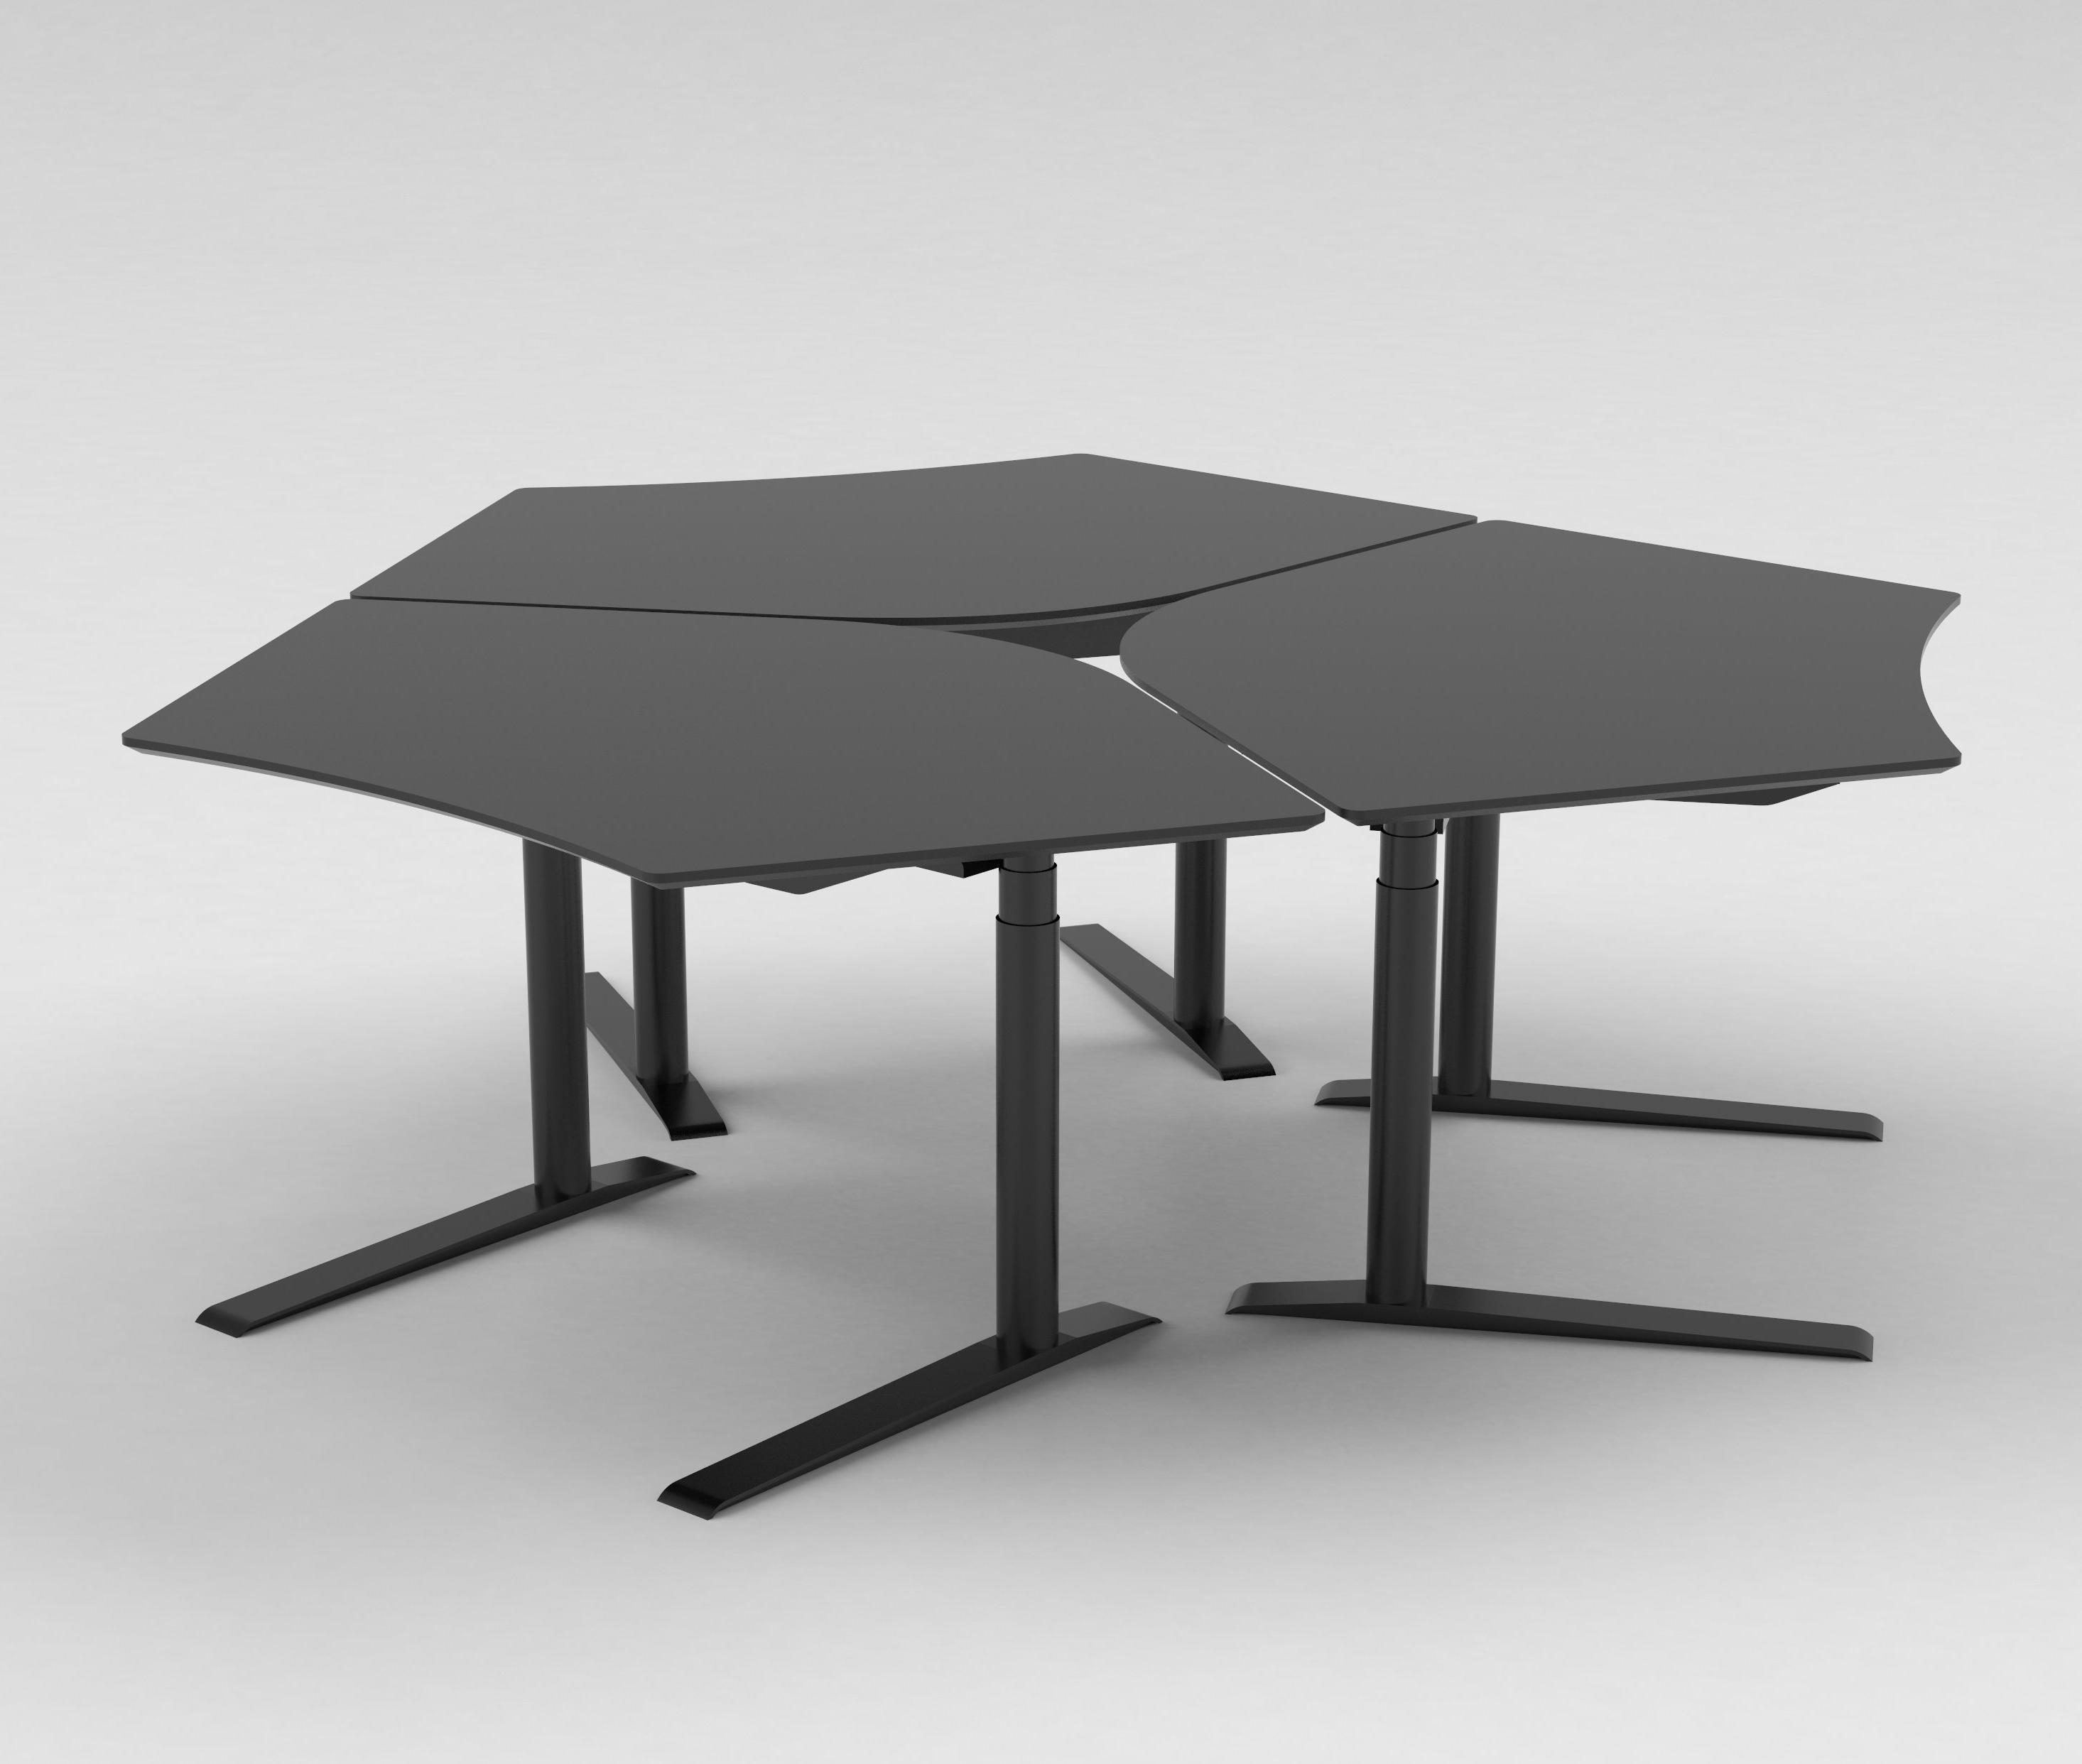 Sit Stand Desk Designs : Quadro sit stand desk individual desks from cube design